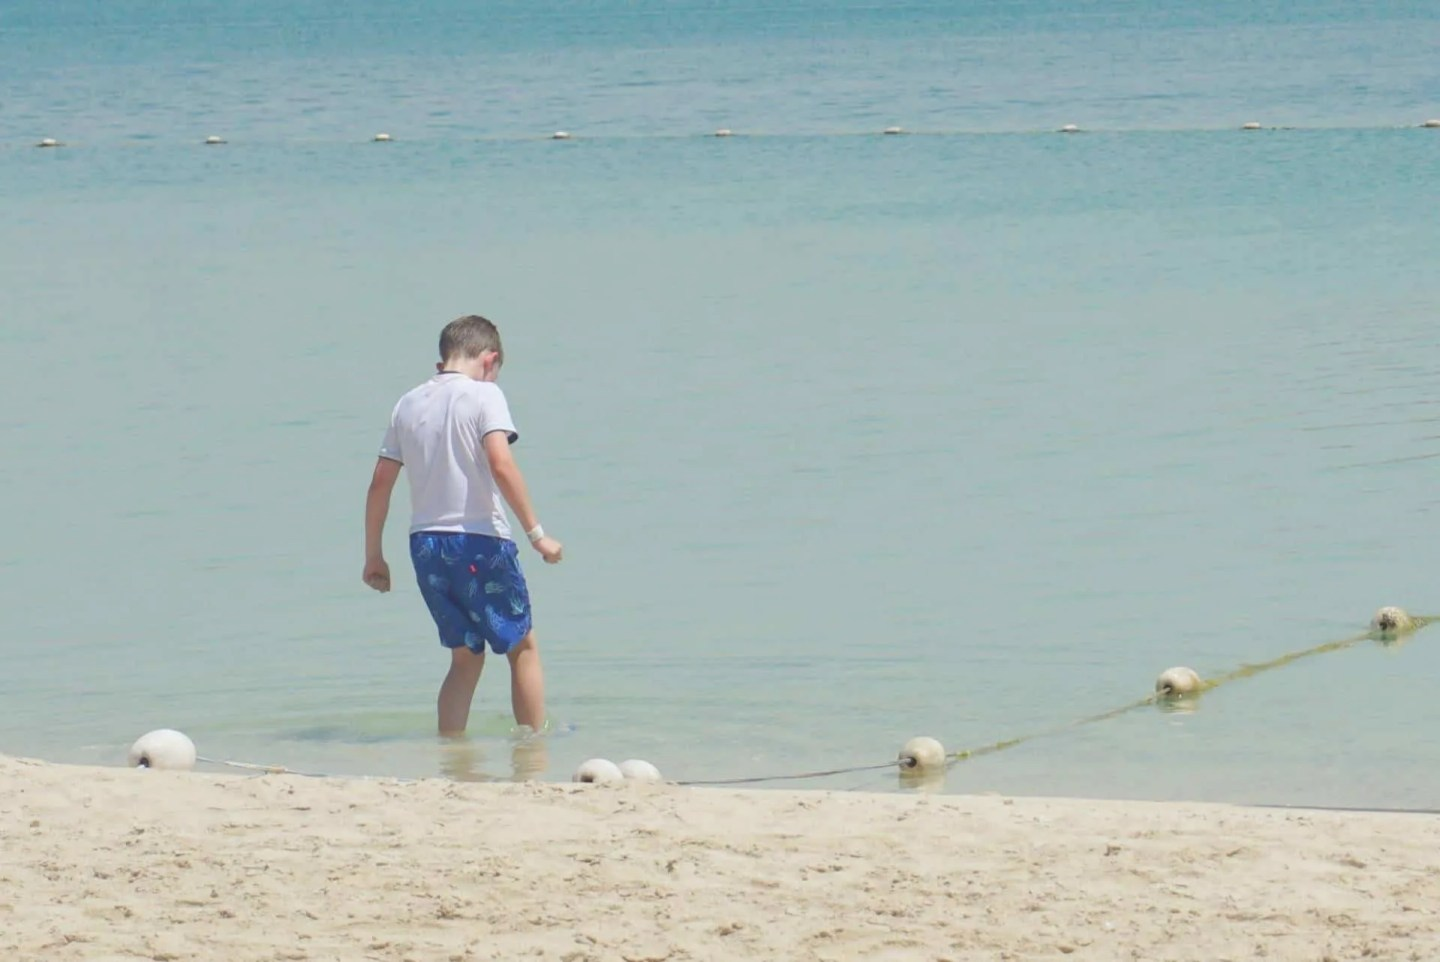 Our Day At Atlantis The Palm with teenagers www.extraordinarychaos.com